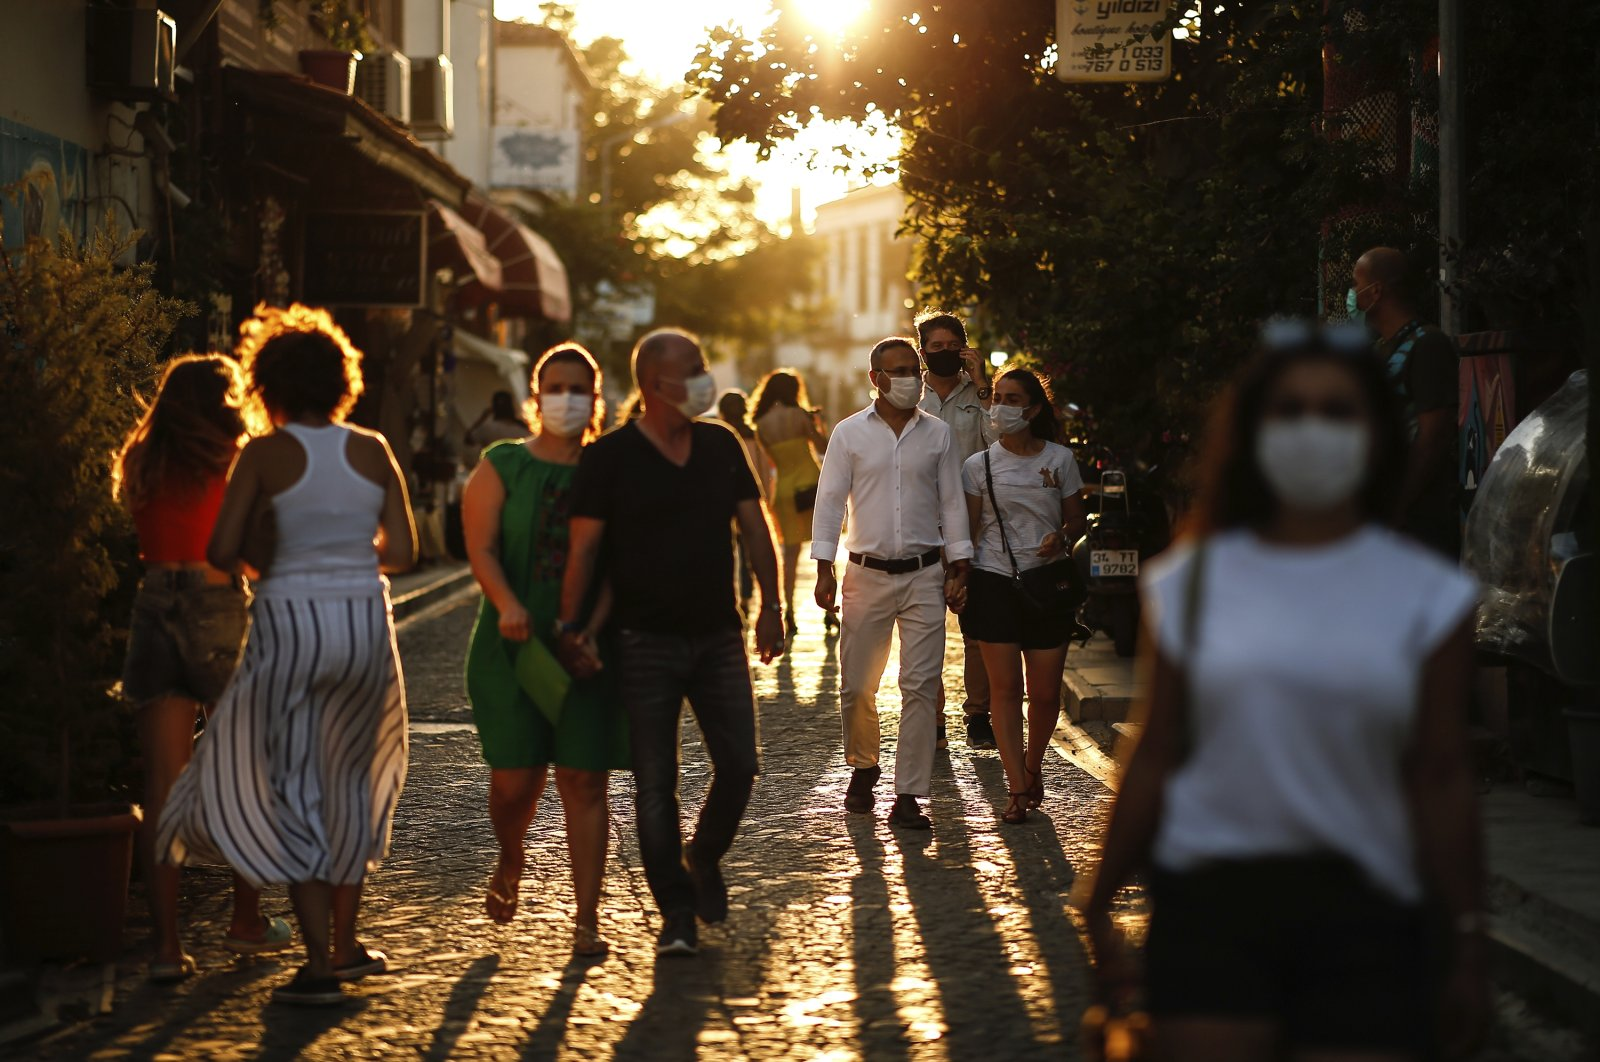 Tourists wearing masks to protect from the spread of the coronavirus walk at the Aegean Sea town of Ayvalık, Turkey, Wednesday, Sept. 9, 2020. (AP Photo)